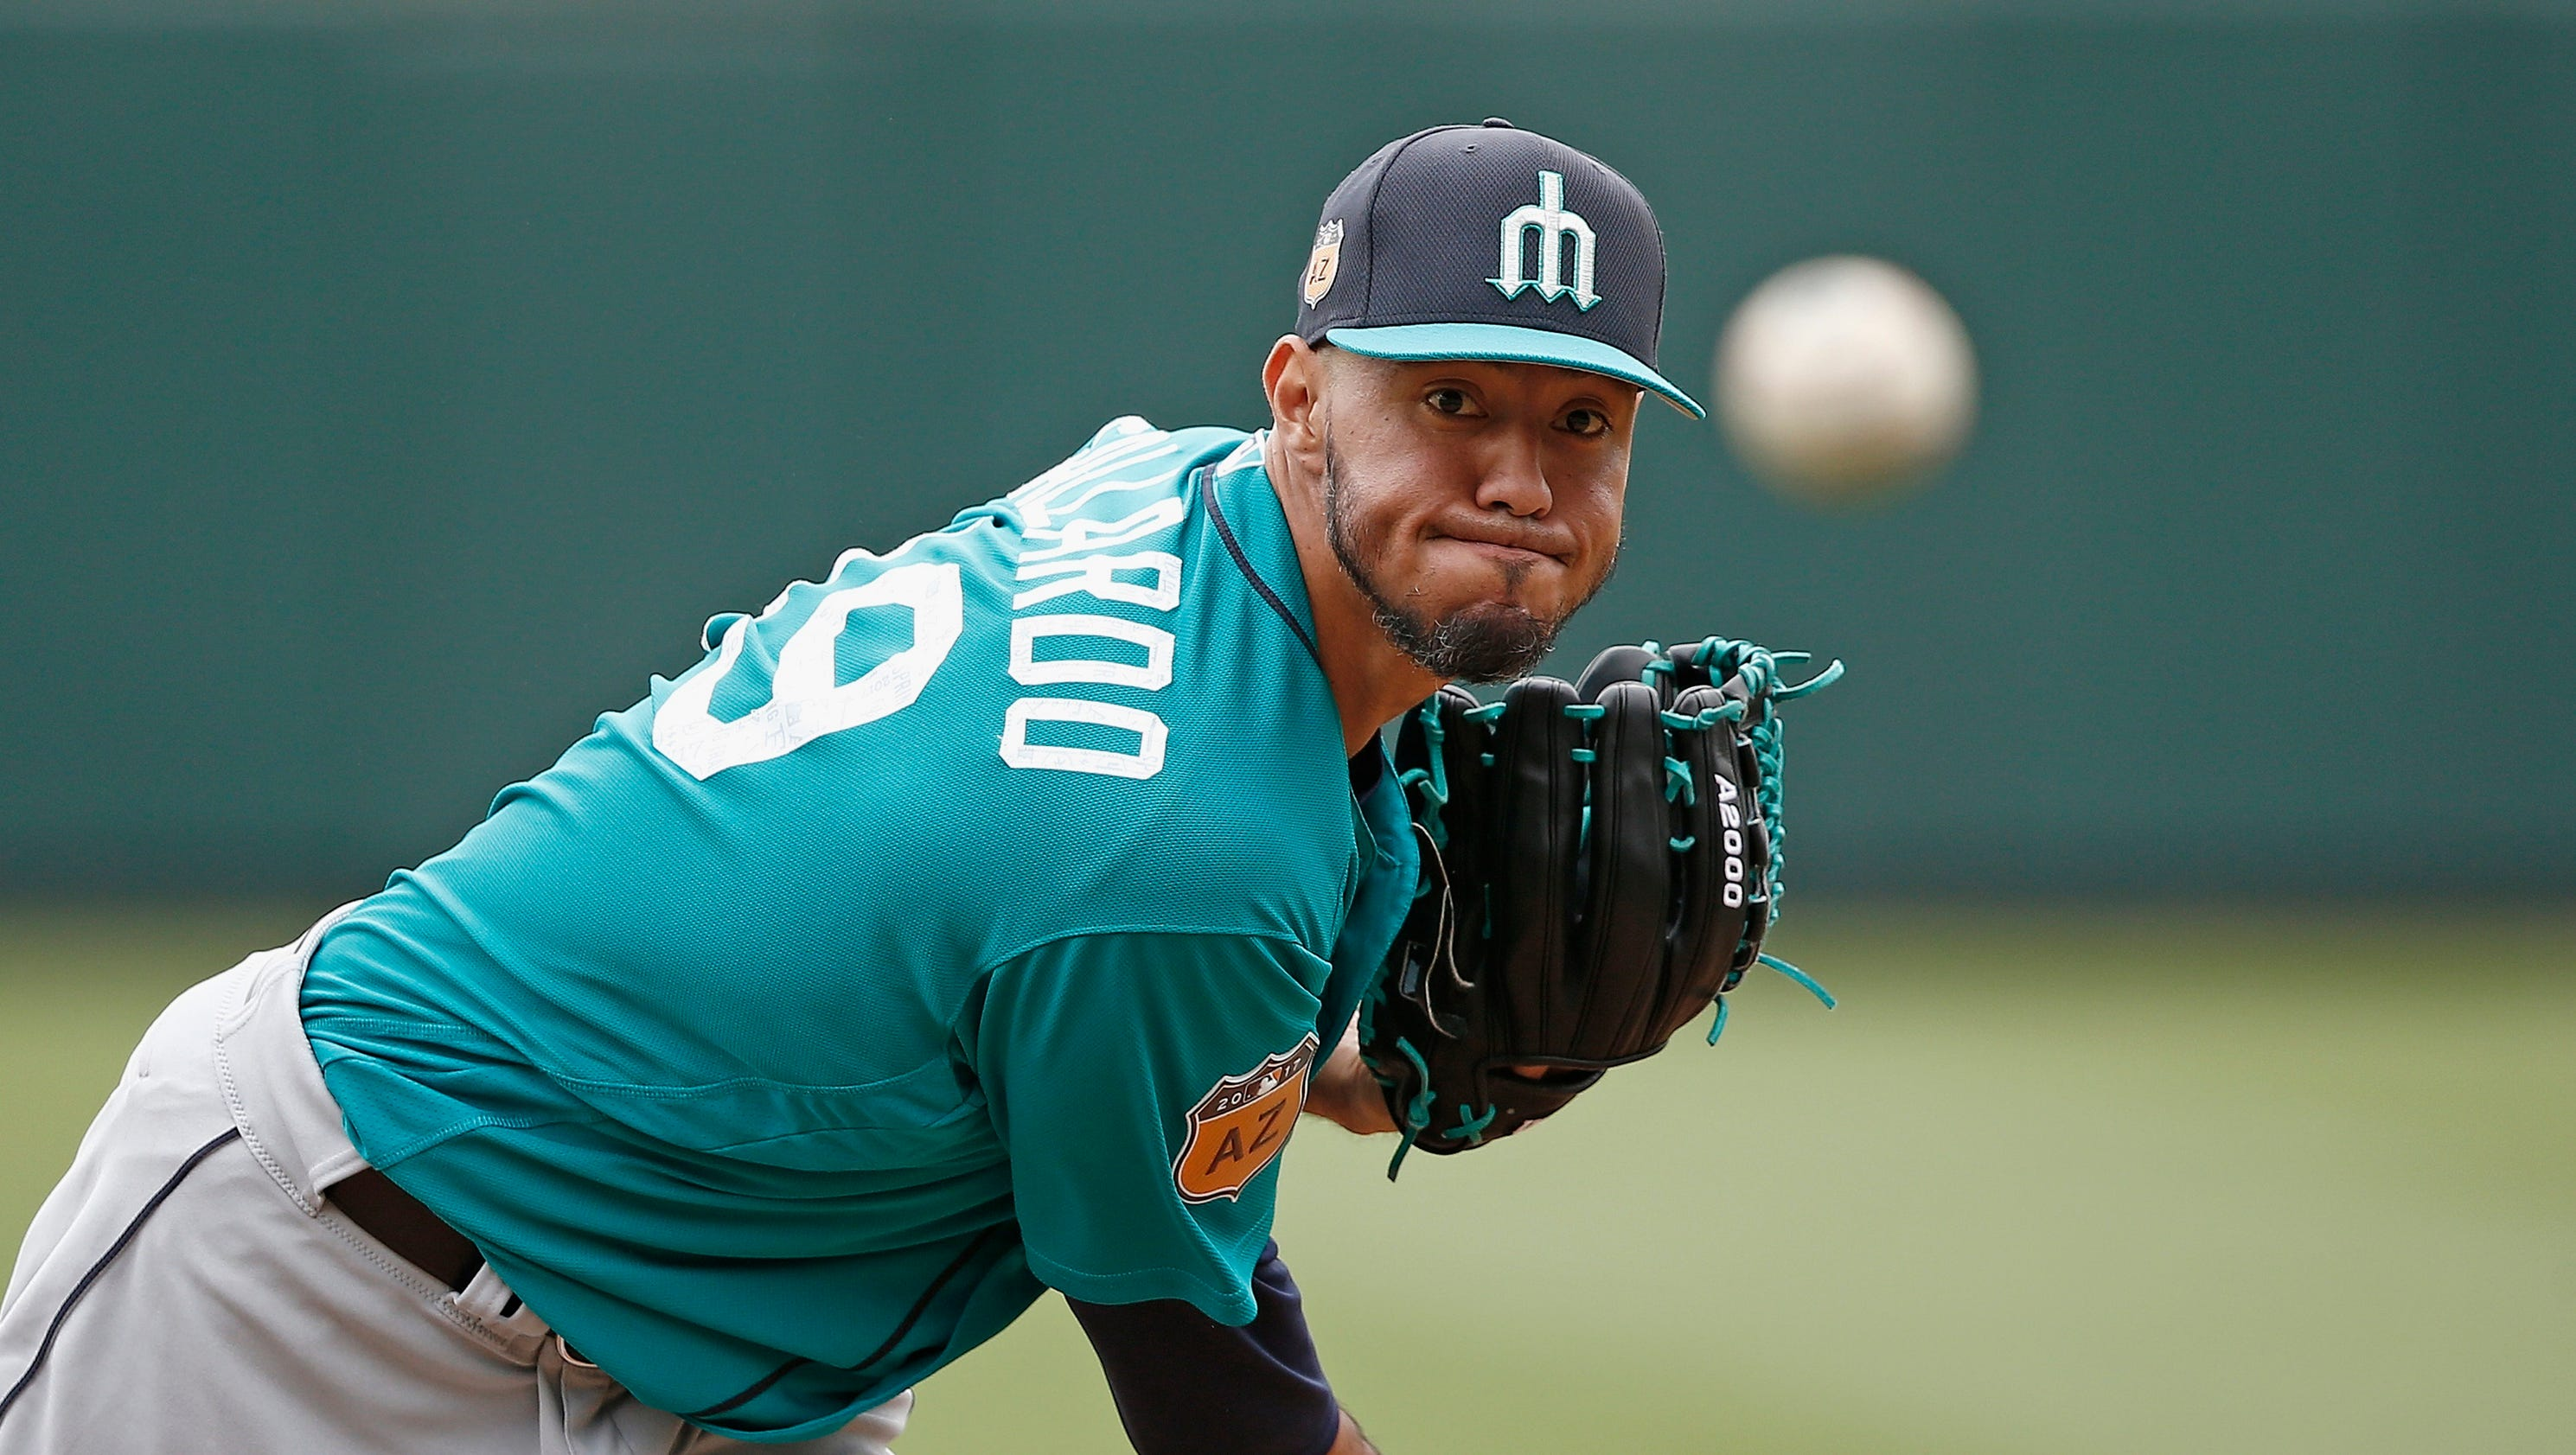 Spring training ends with third straight tie for M's